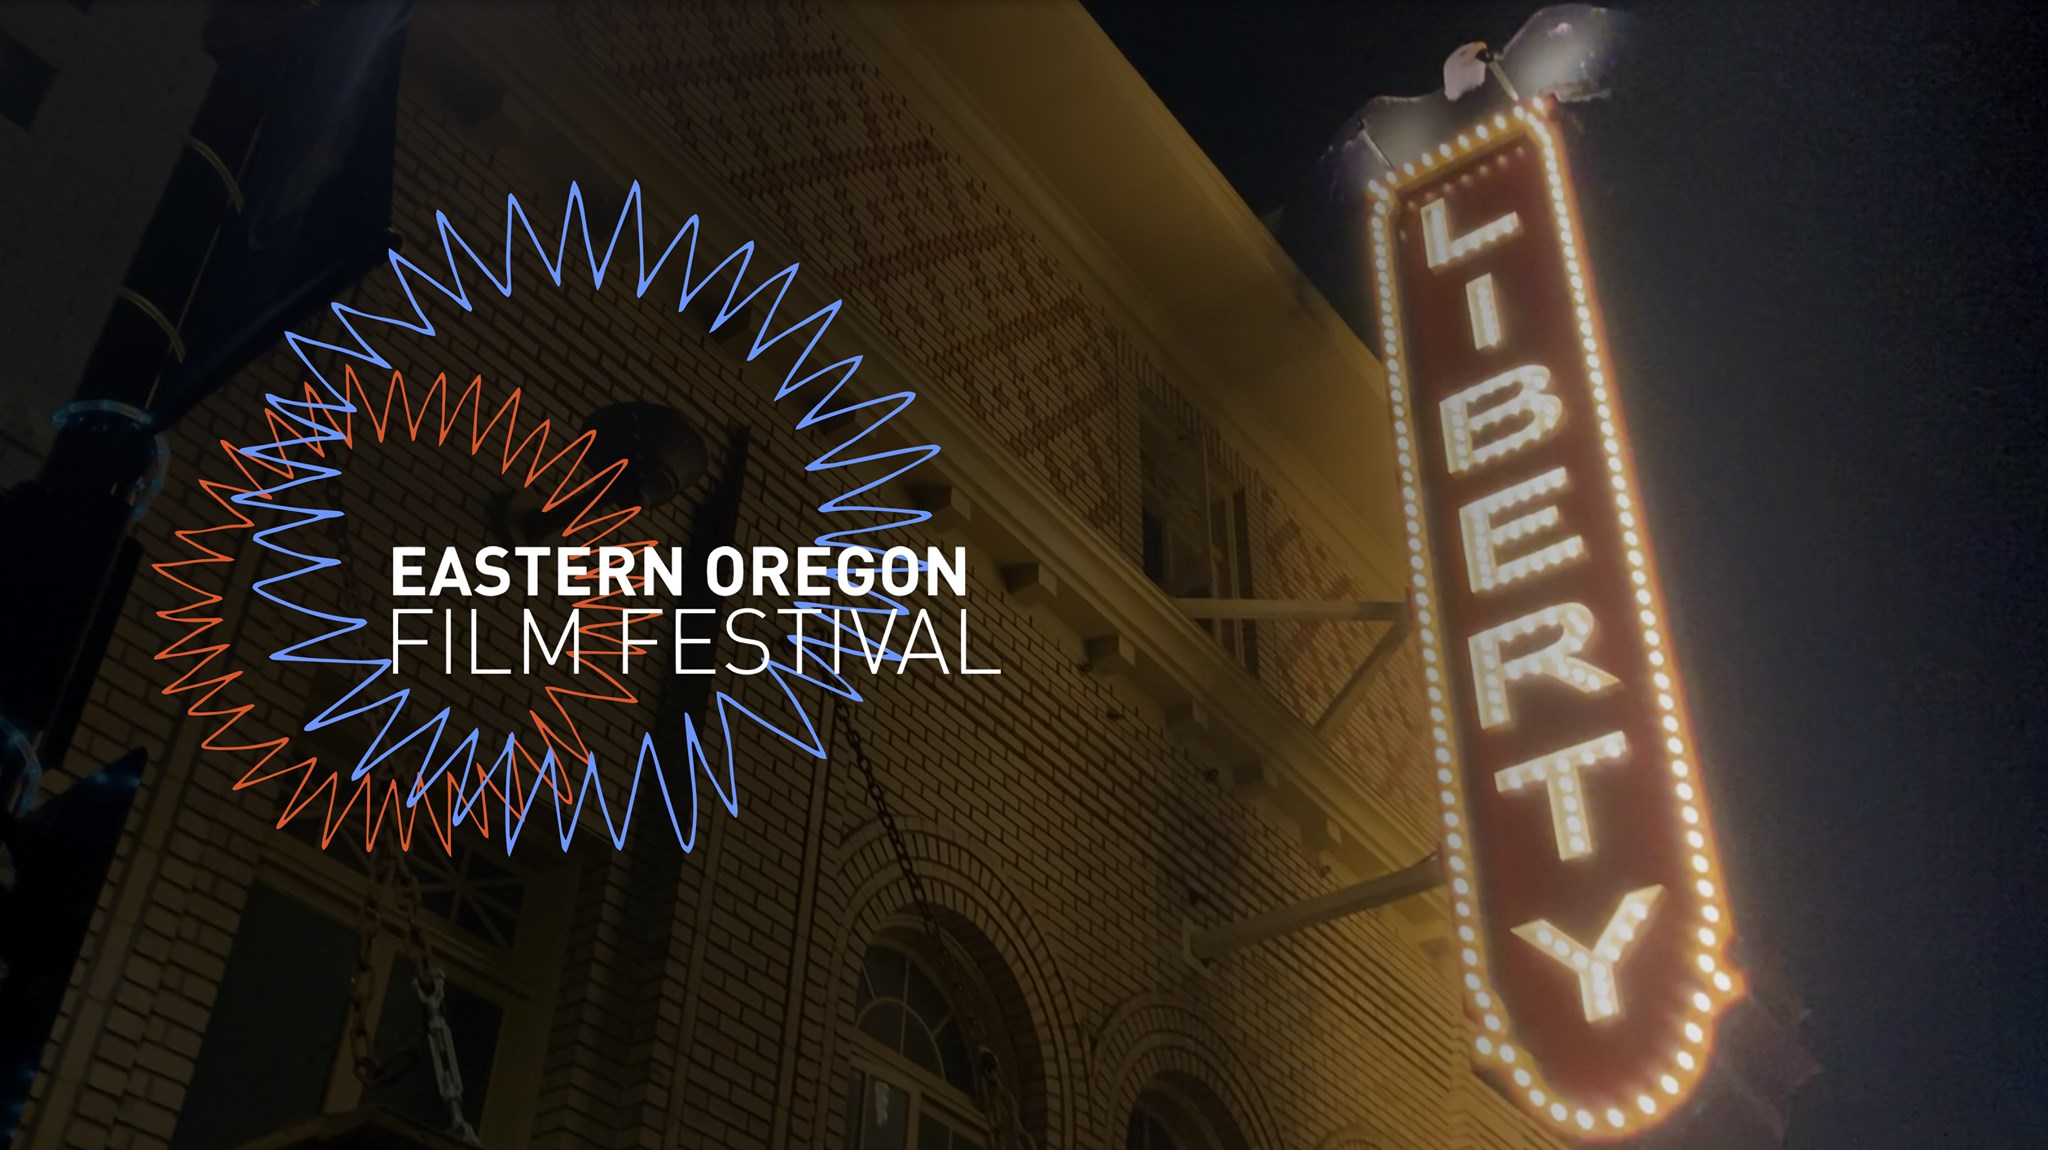 Eastern Oregon Film Festival will be October 21-23, 2021